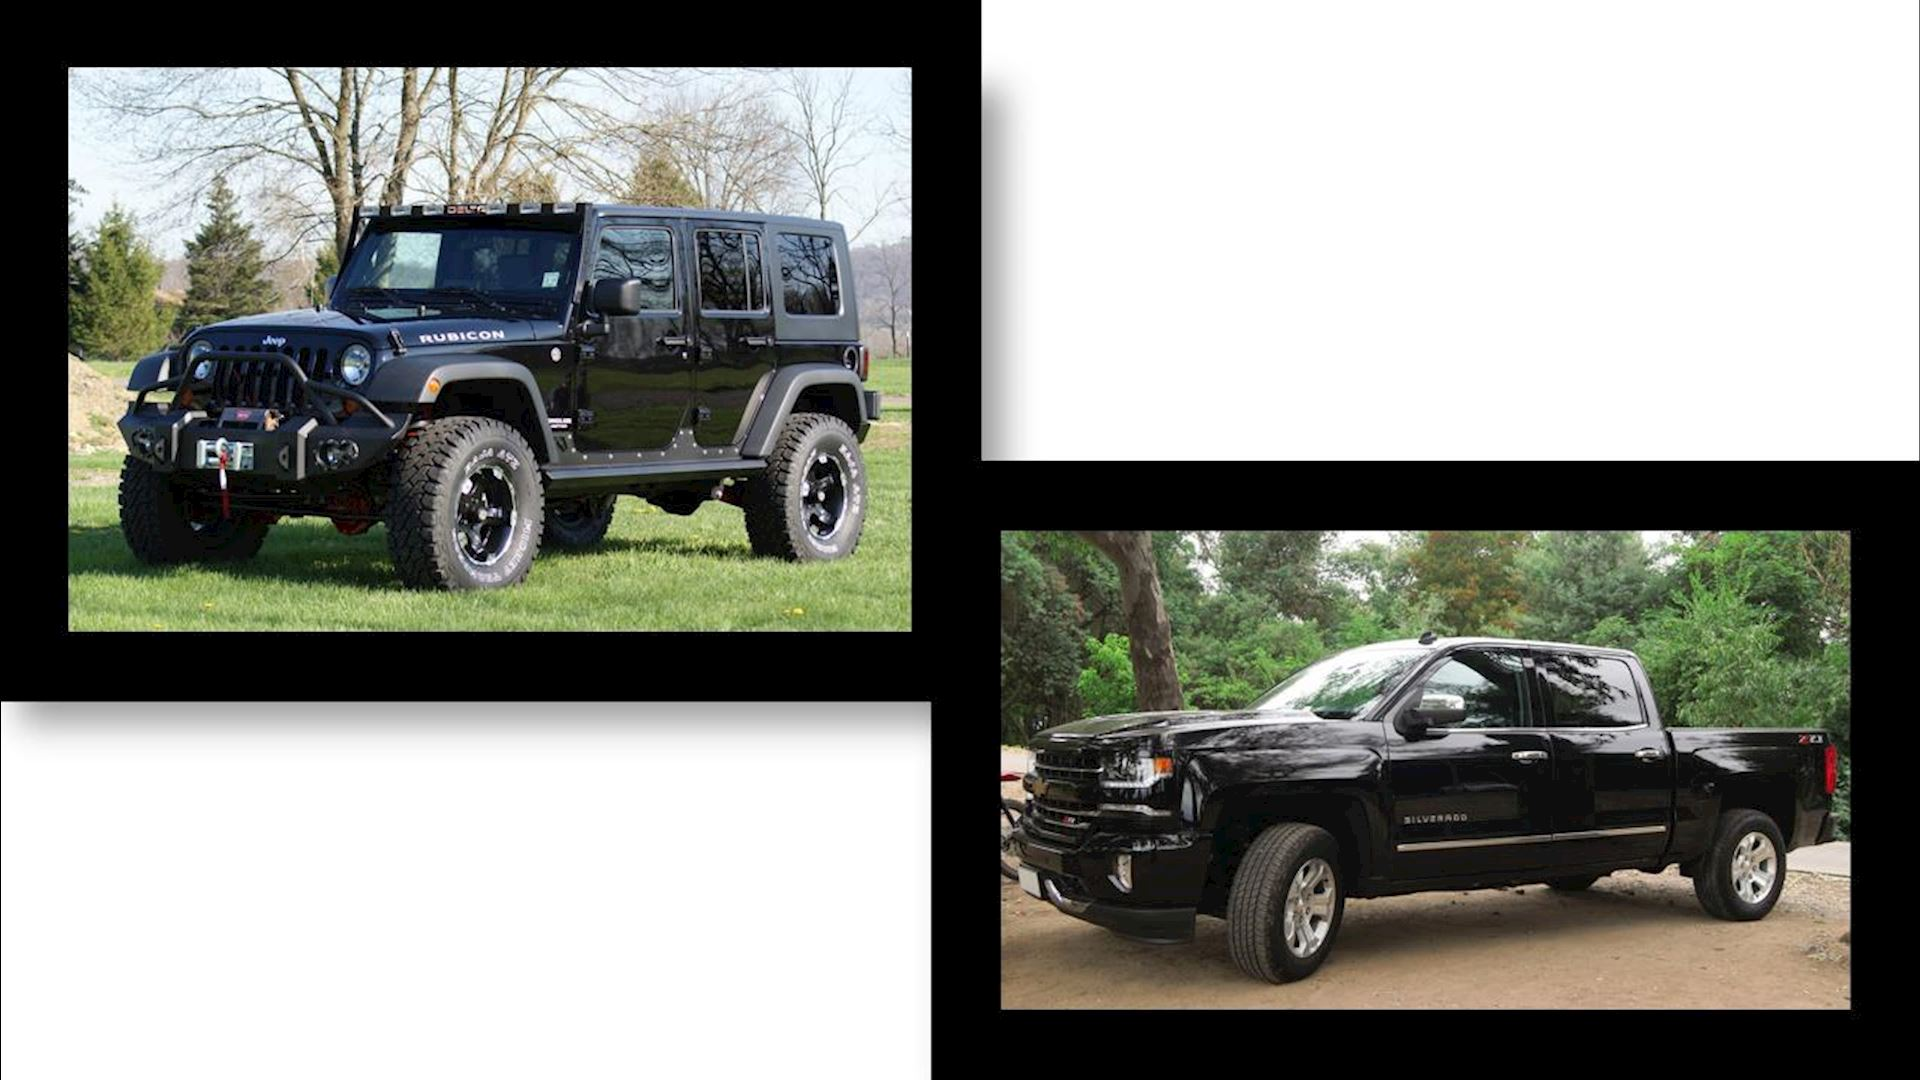 Which is better – A Jeep or a Truck?